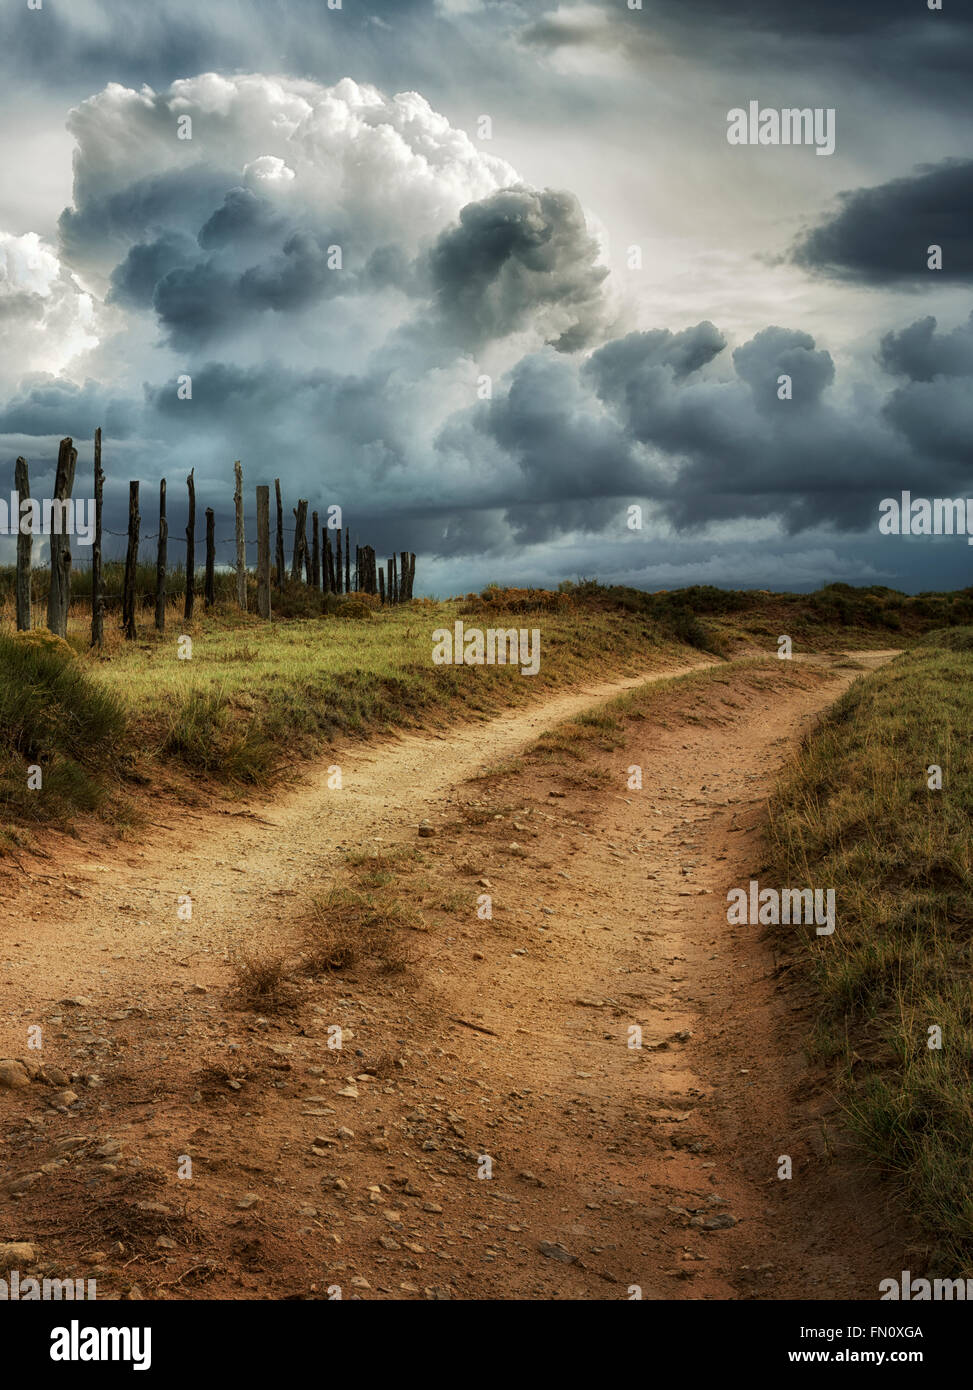 Road, fence line and thunderstorm near Coal Mine Canyon, Arizona - Stock Image